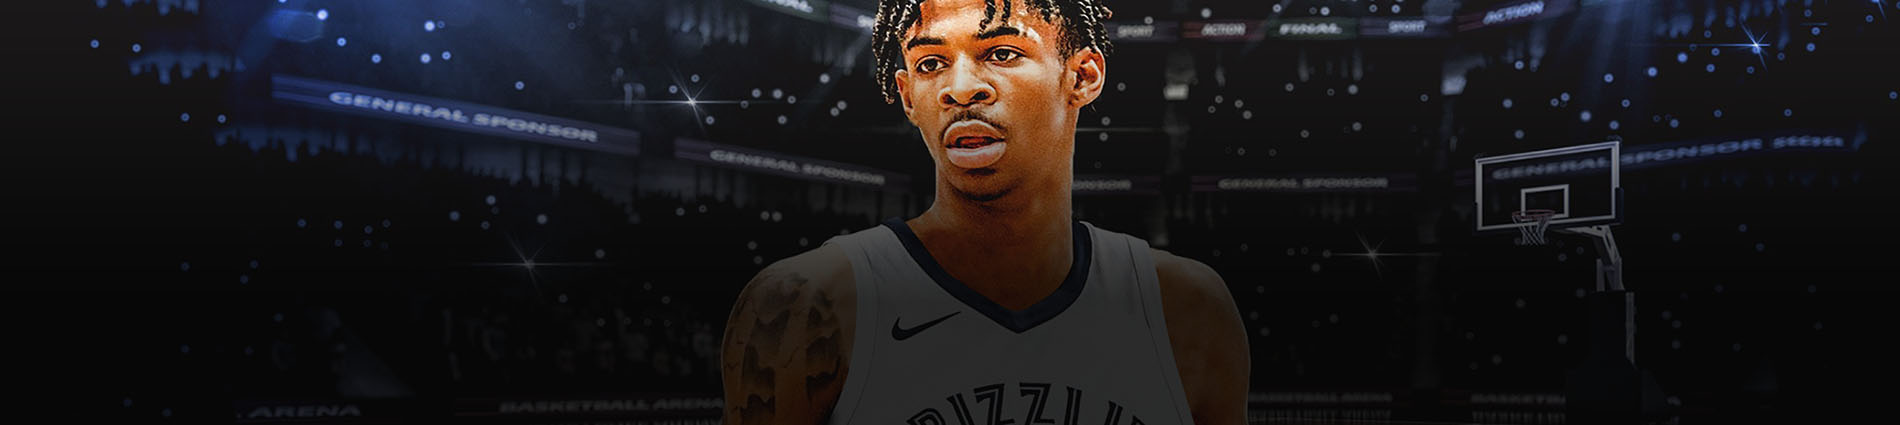 2019 nba rookie of the year